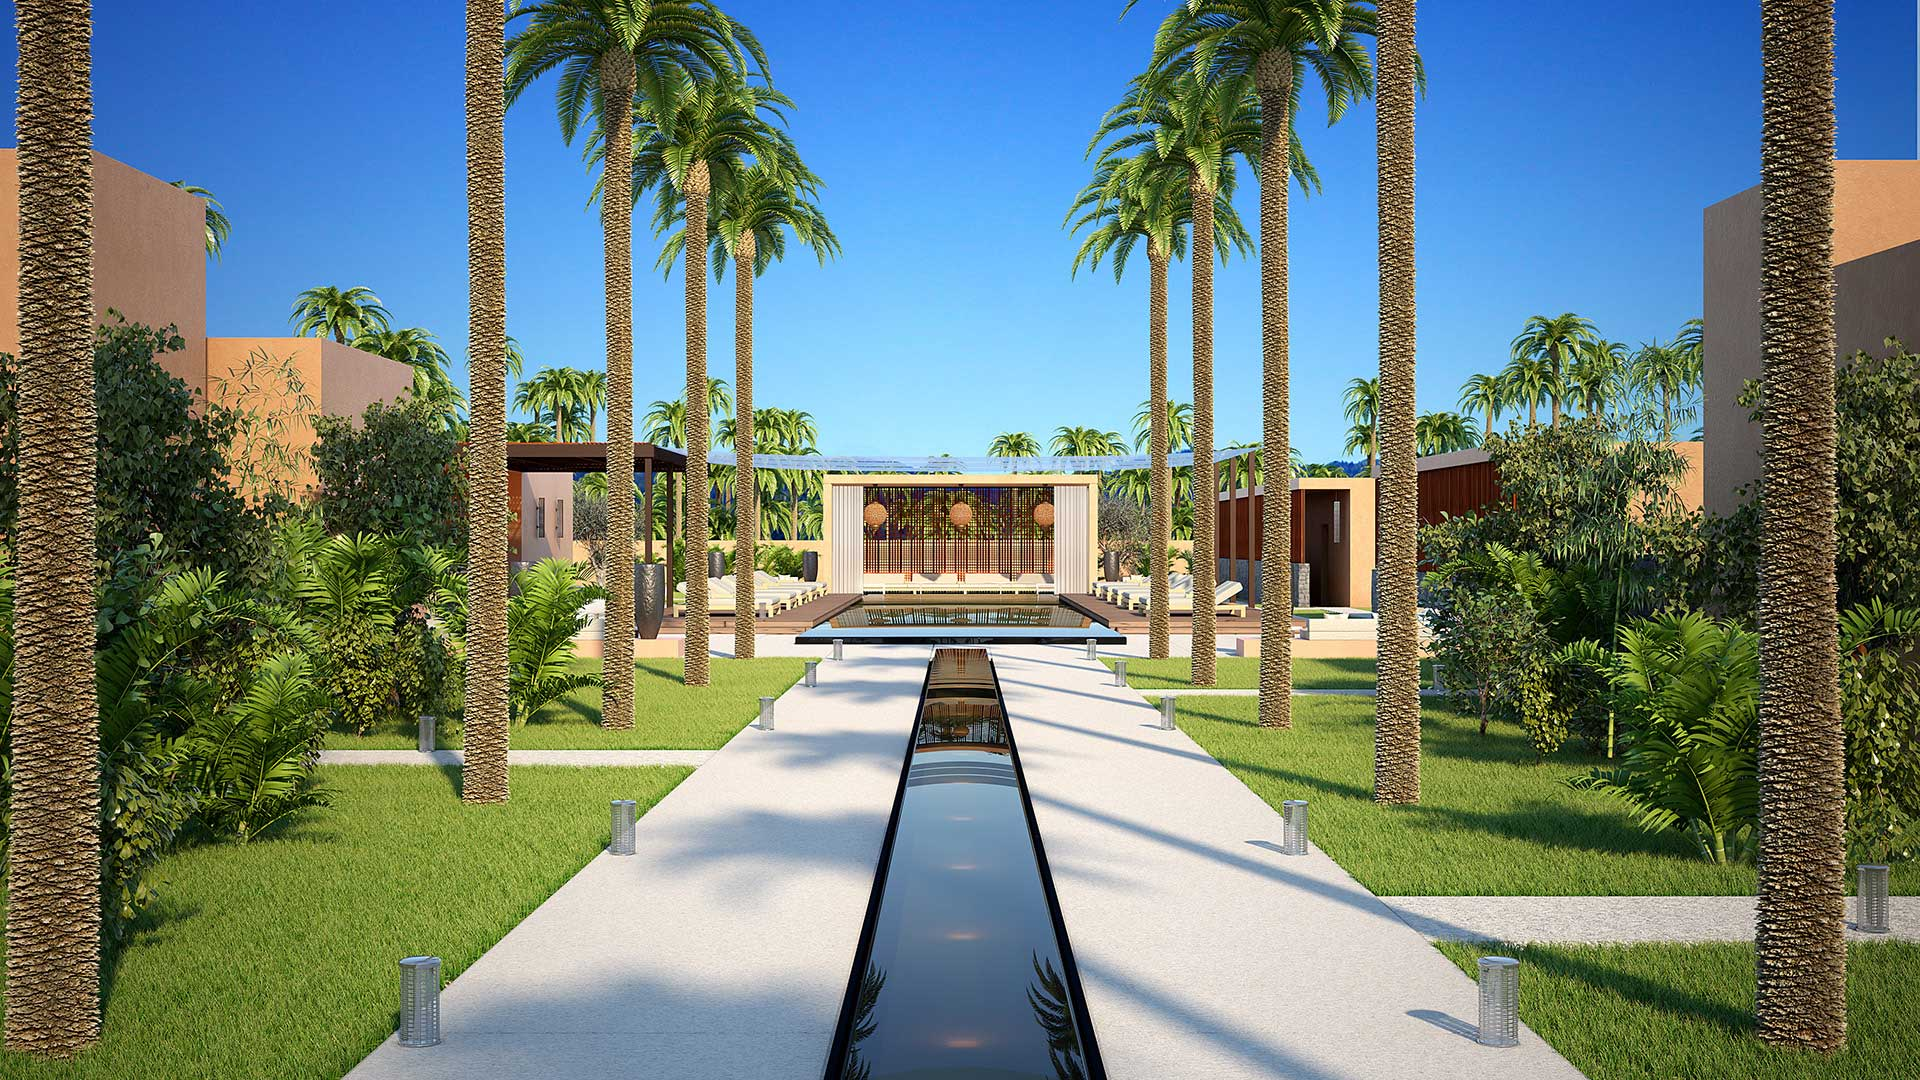 3D Perspective of a project of a villa in Morocco made from computer generated images.